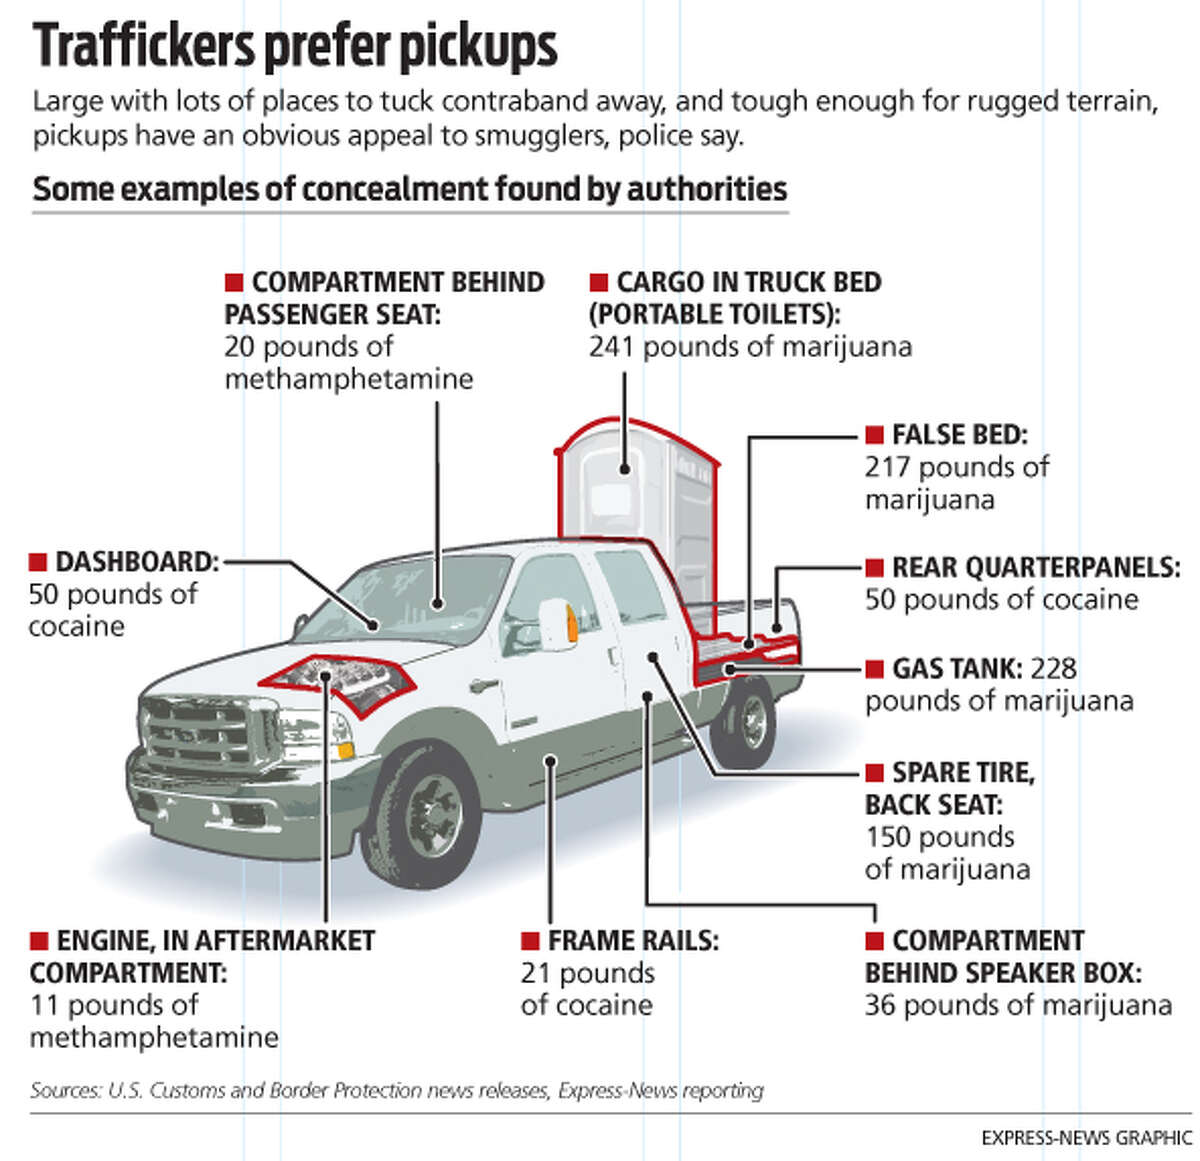 cartels targeting pickups cartels targeting pickups